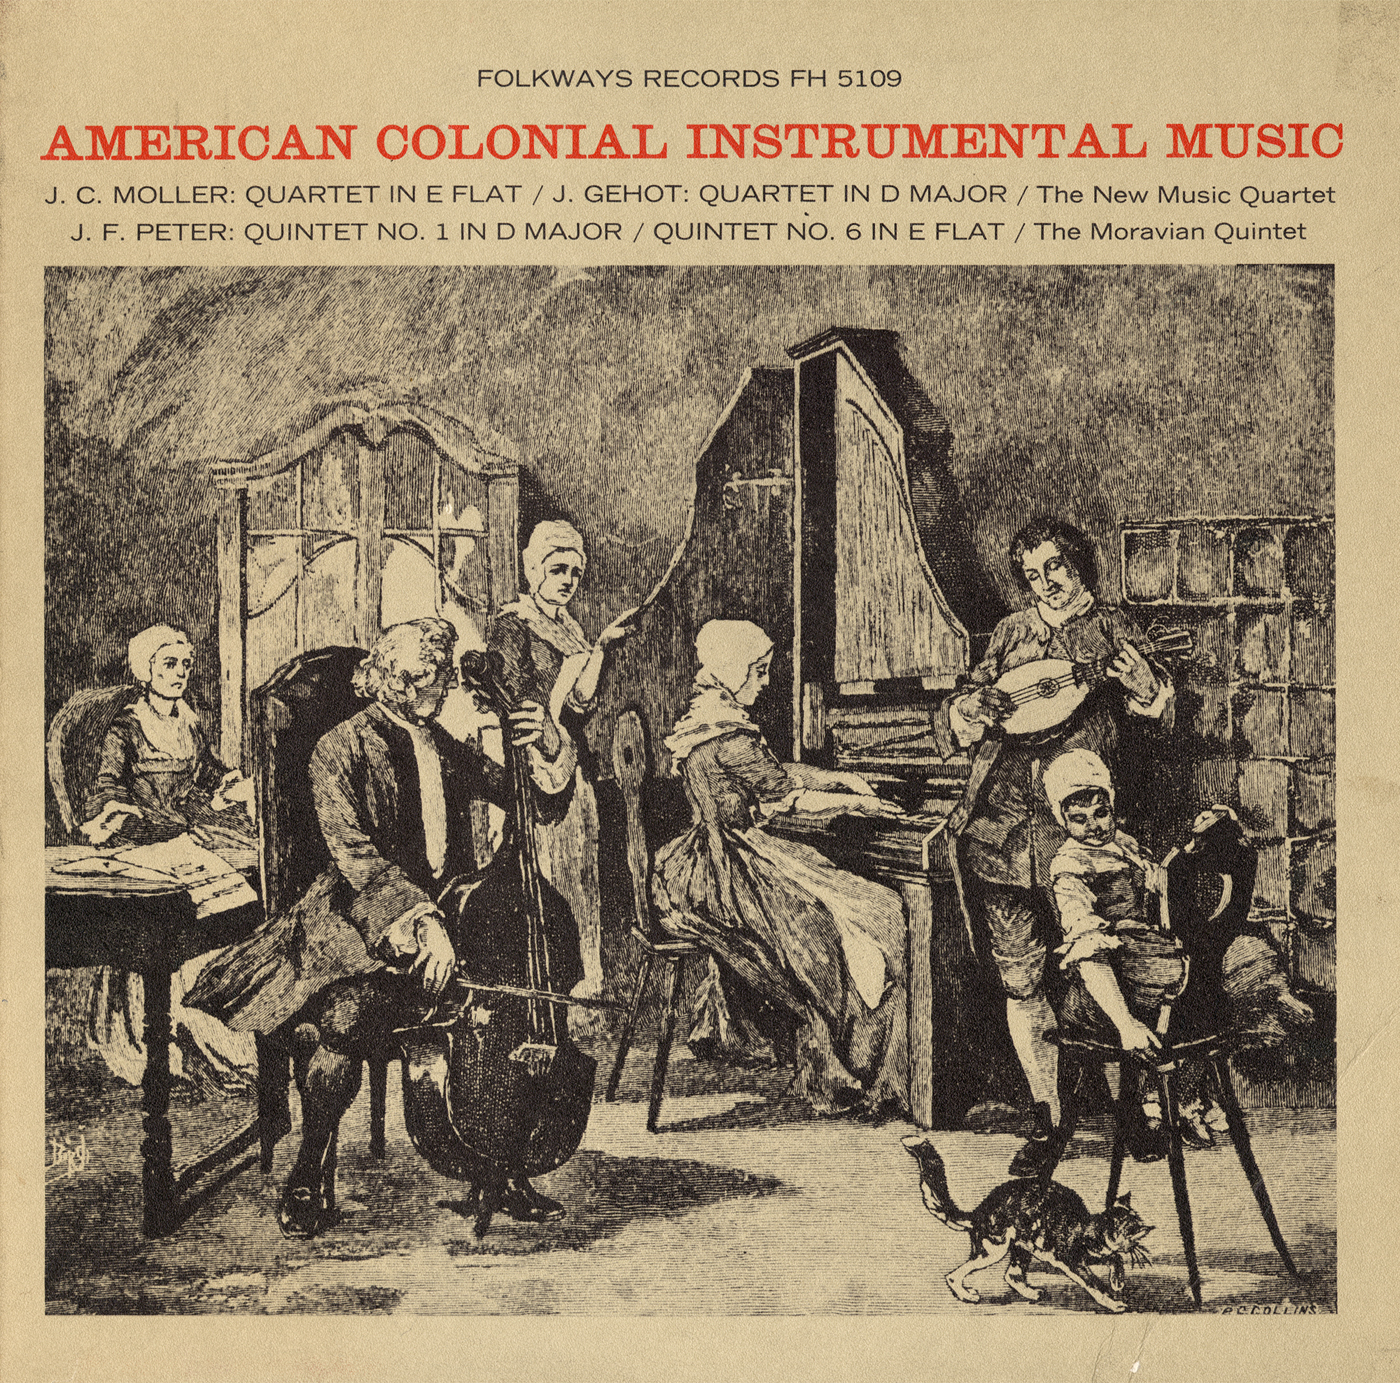 American Colonial Instrumental Music Smithsonian